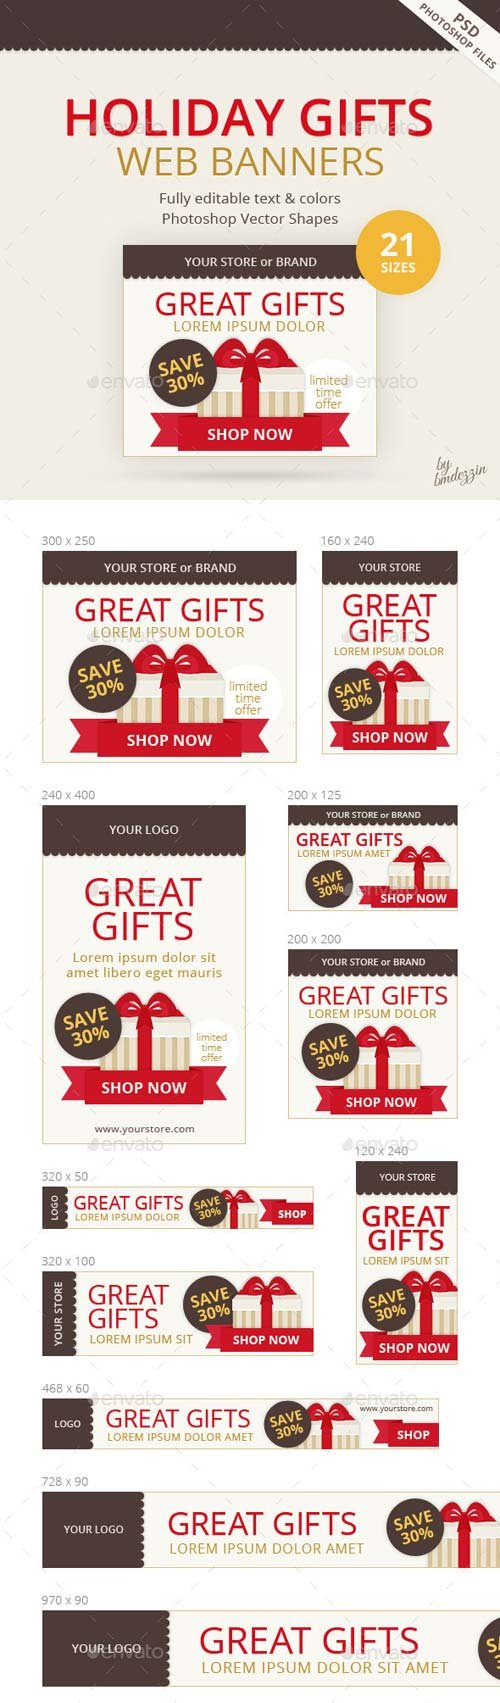 GraphicRiver Holiday Gifts Web Banners